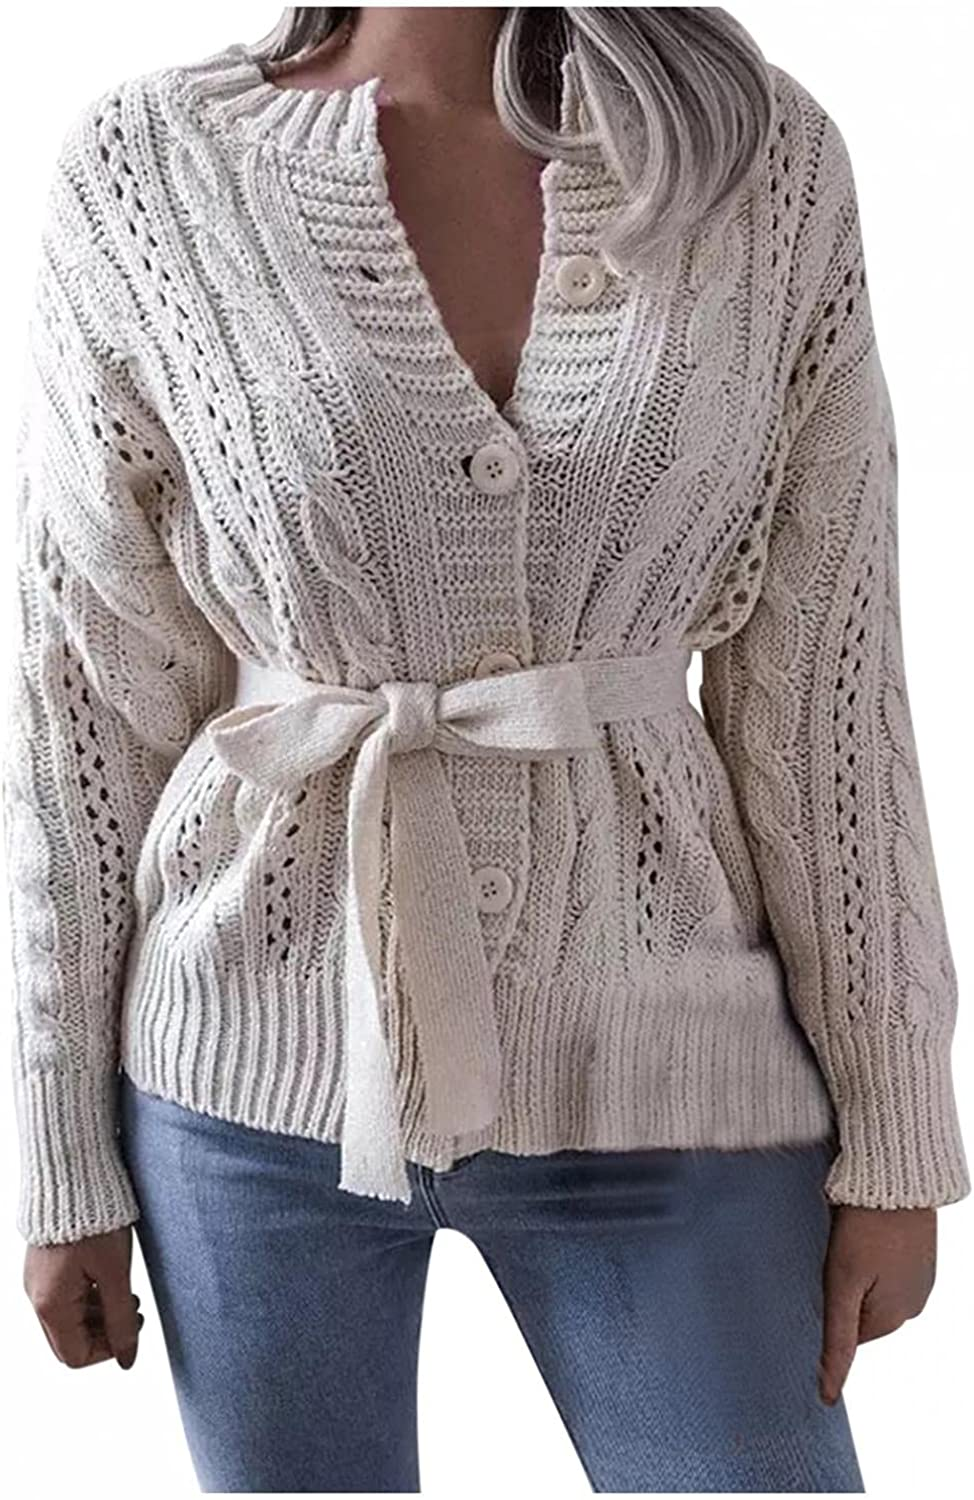 Cardigan Sweaters for Women, Solid Color Long Sleeved Outerwear with Waist Buckle, Loose Waffle Knit Drape Coat